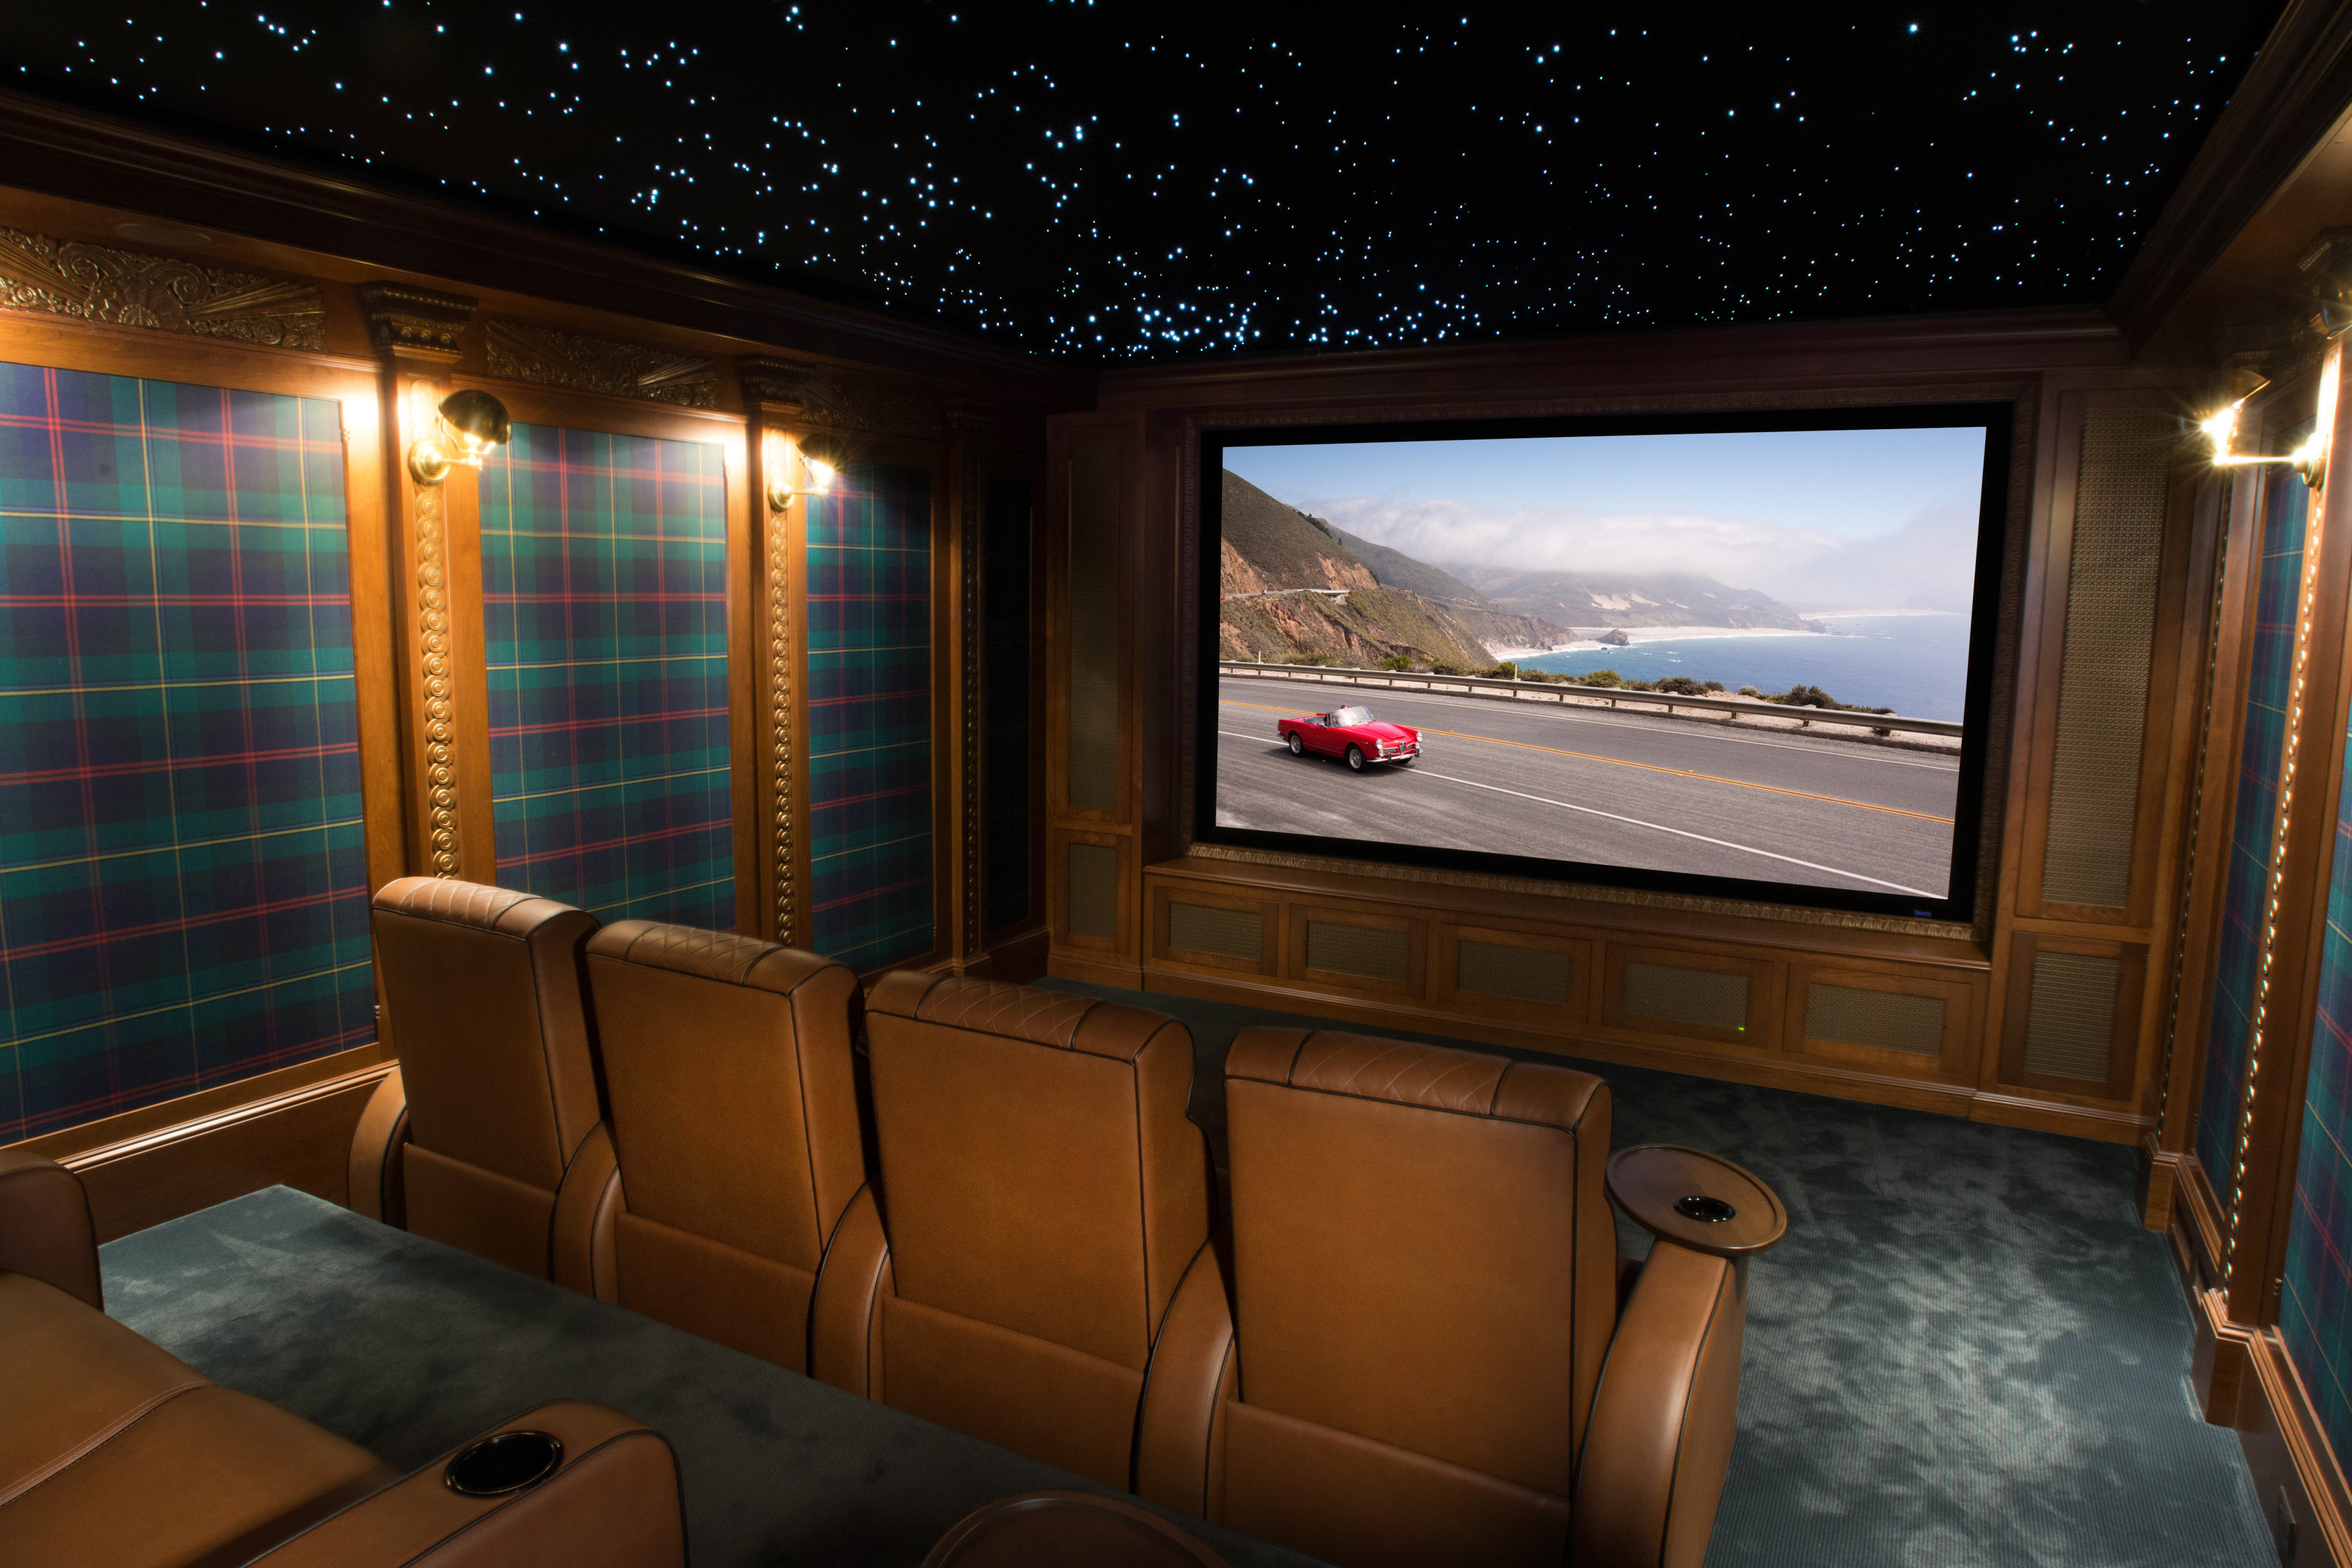 Design Your Own Home Theater 28 Images Design Your Own